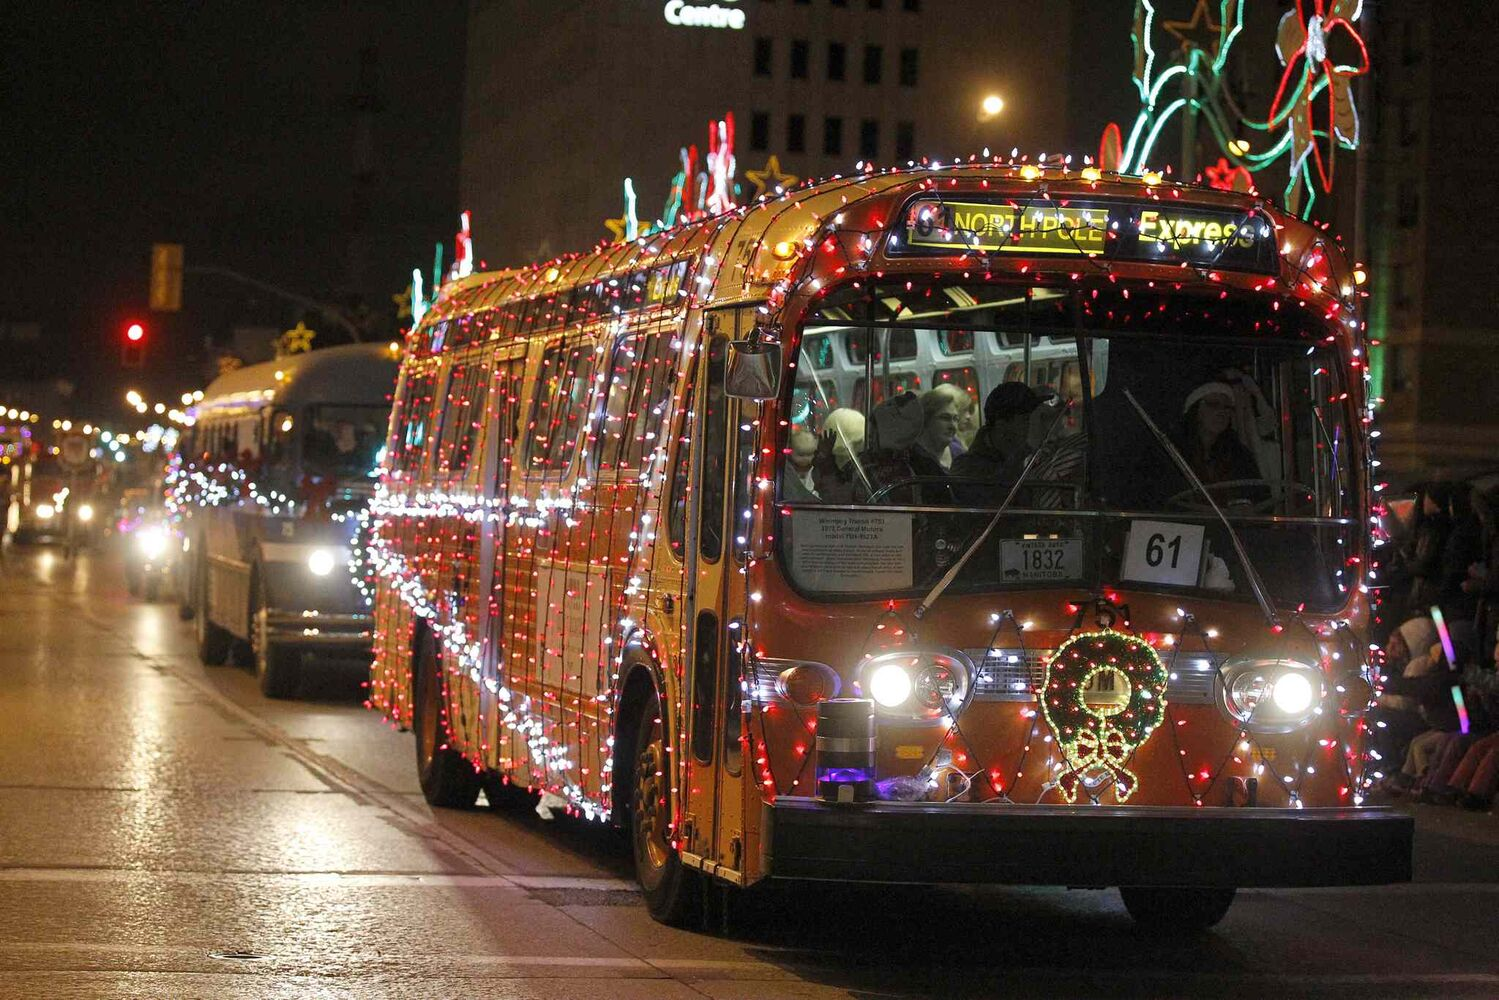 An old Winnipeg Transit bus is covered in lights as part of the parade.